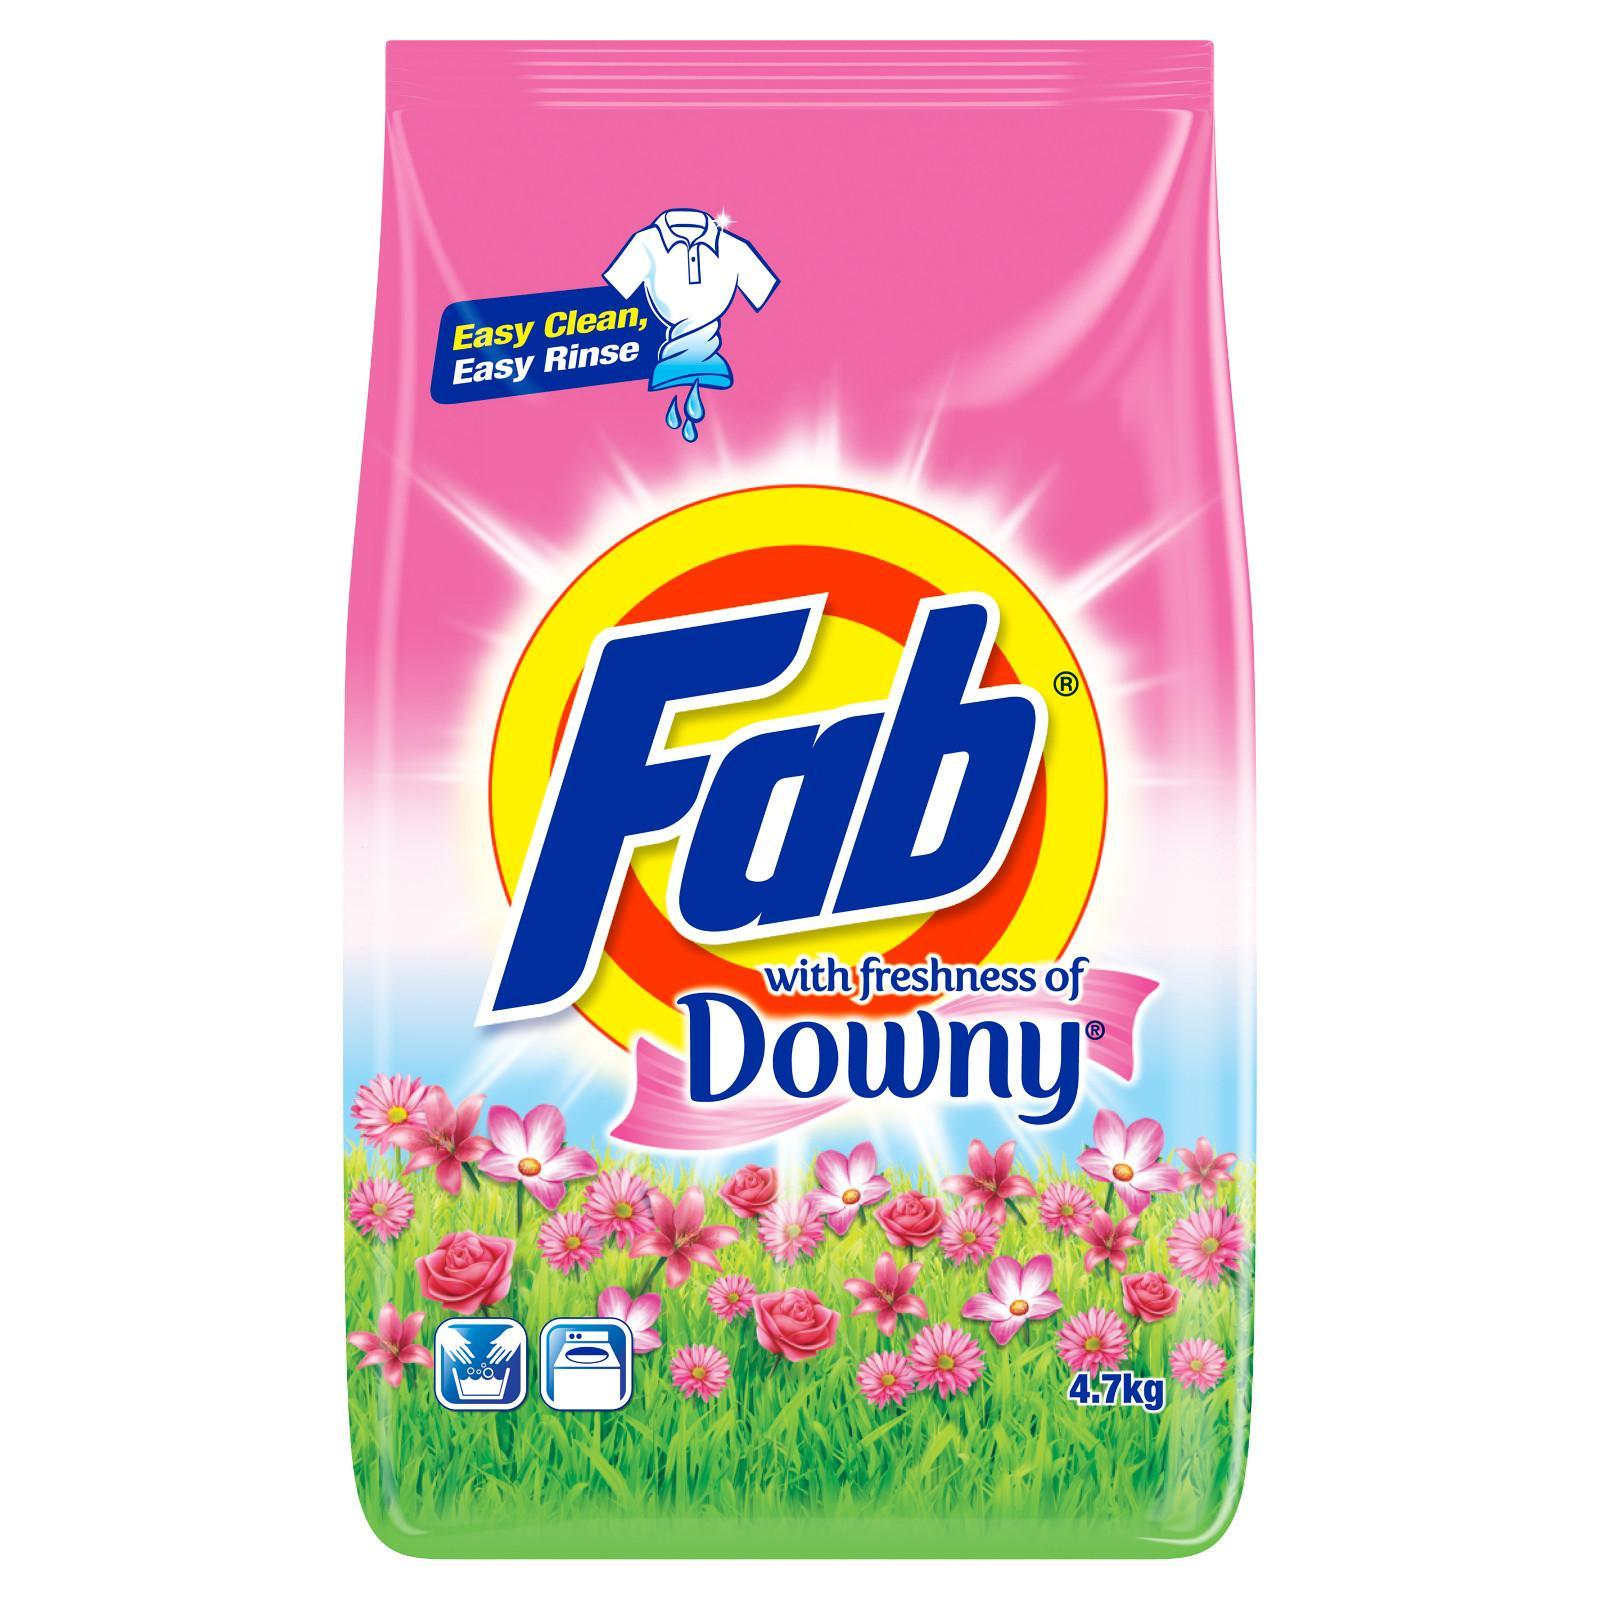 Fab Powder With Freshness of Downy Laundry Detergent